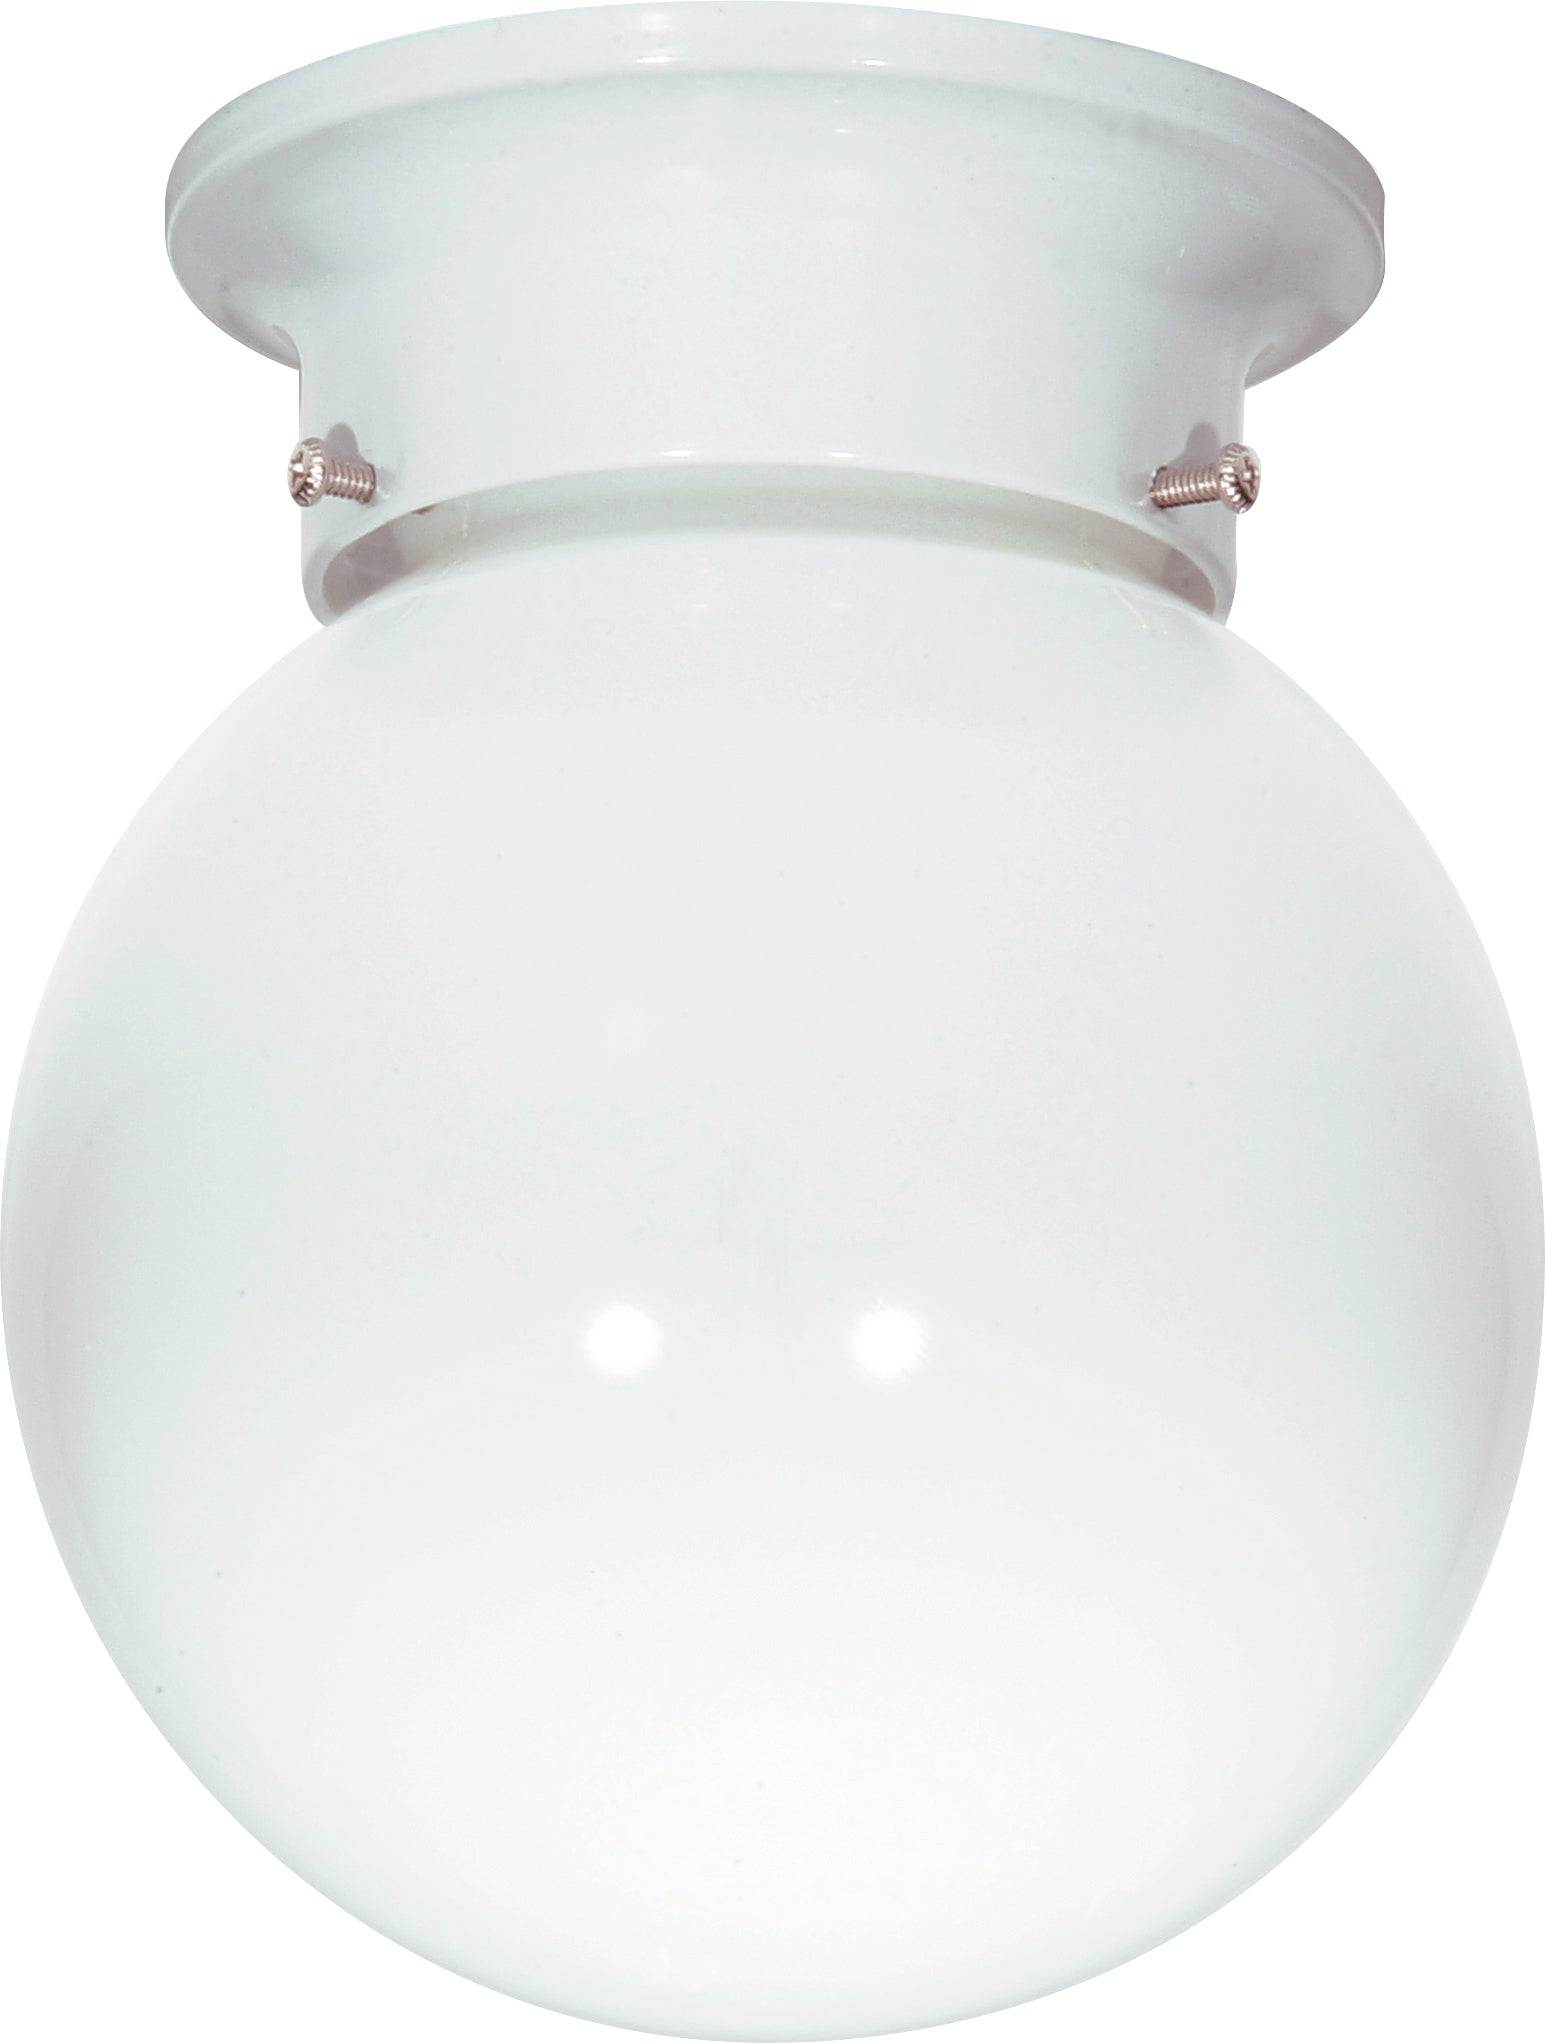 "Nuvo 1-Light 6"" Flush Mount Ceiling Fixture w/ White Ball Glass in White Finish"